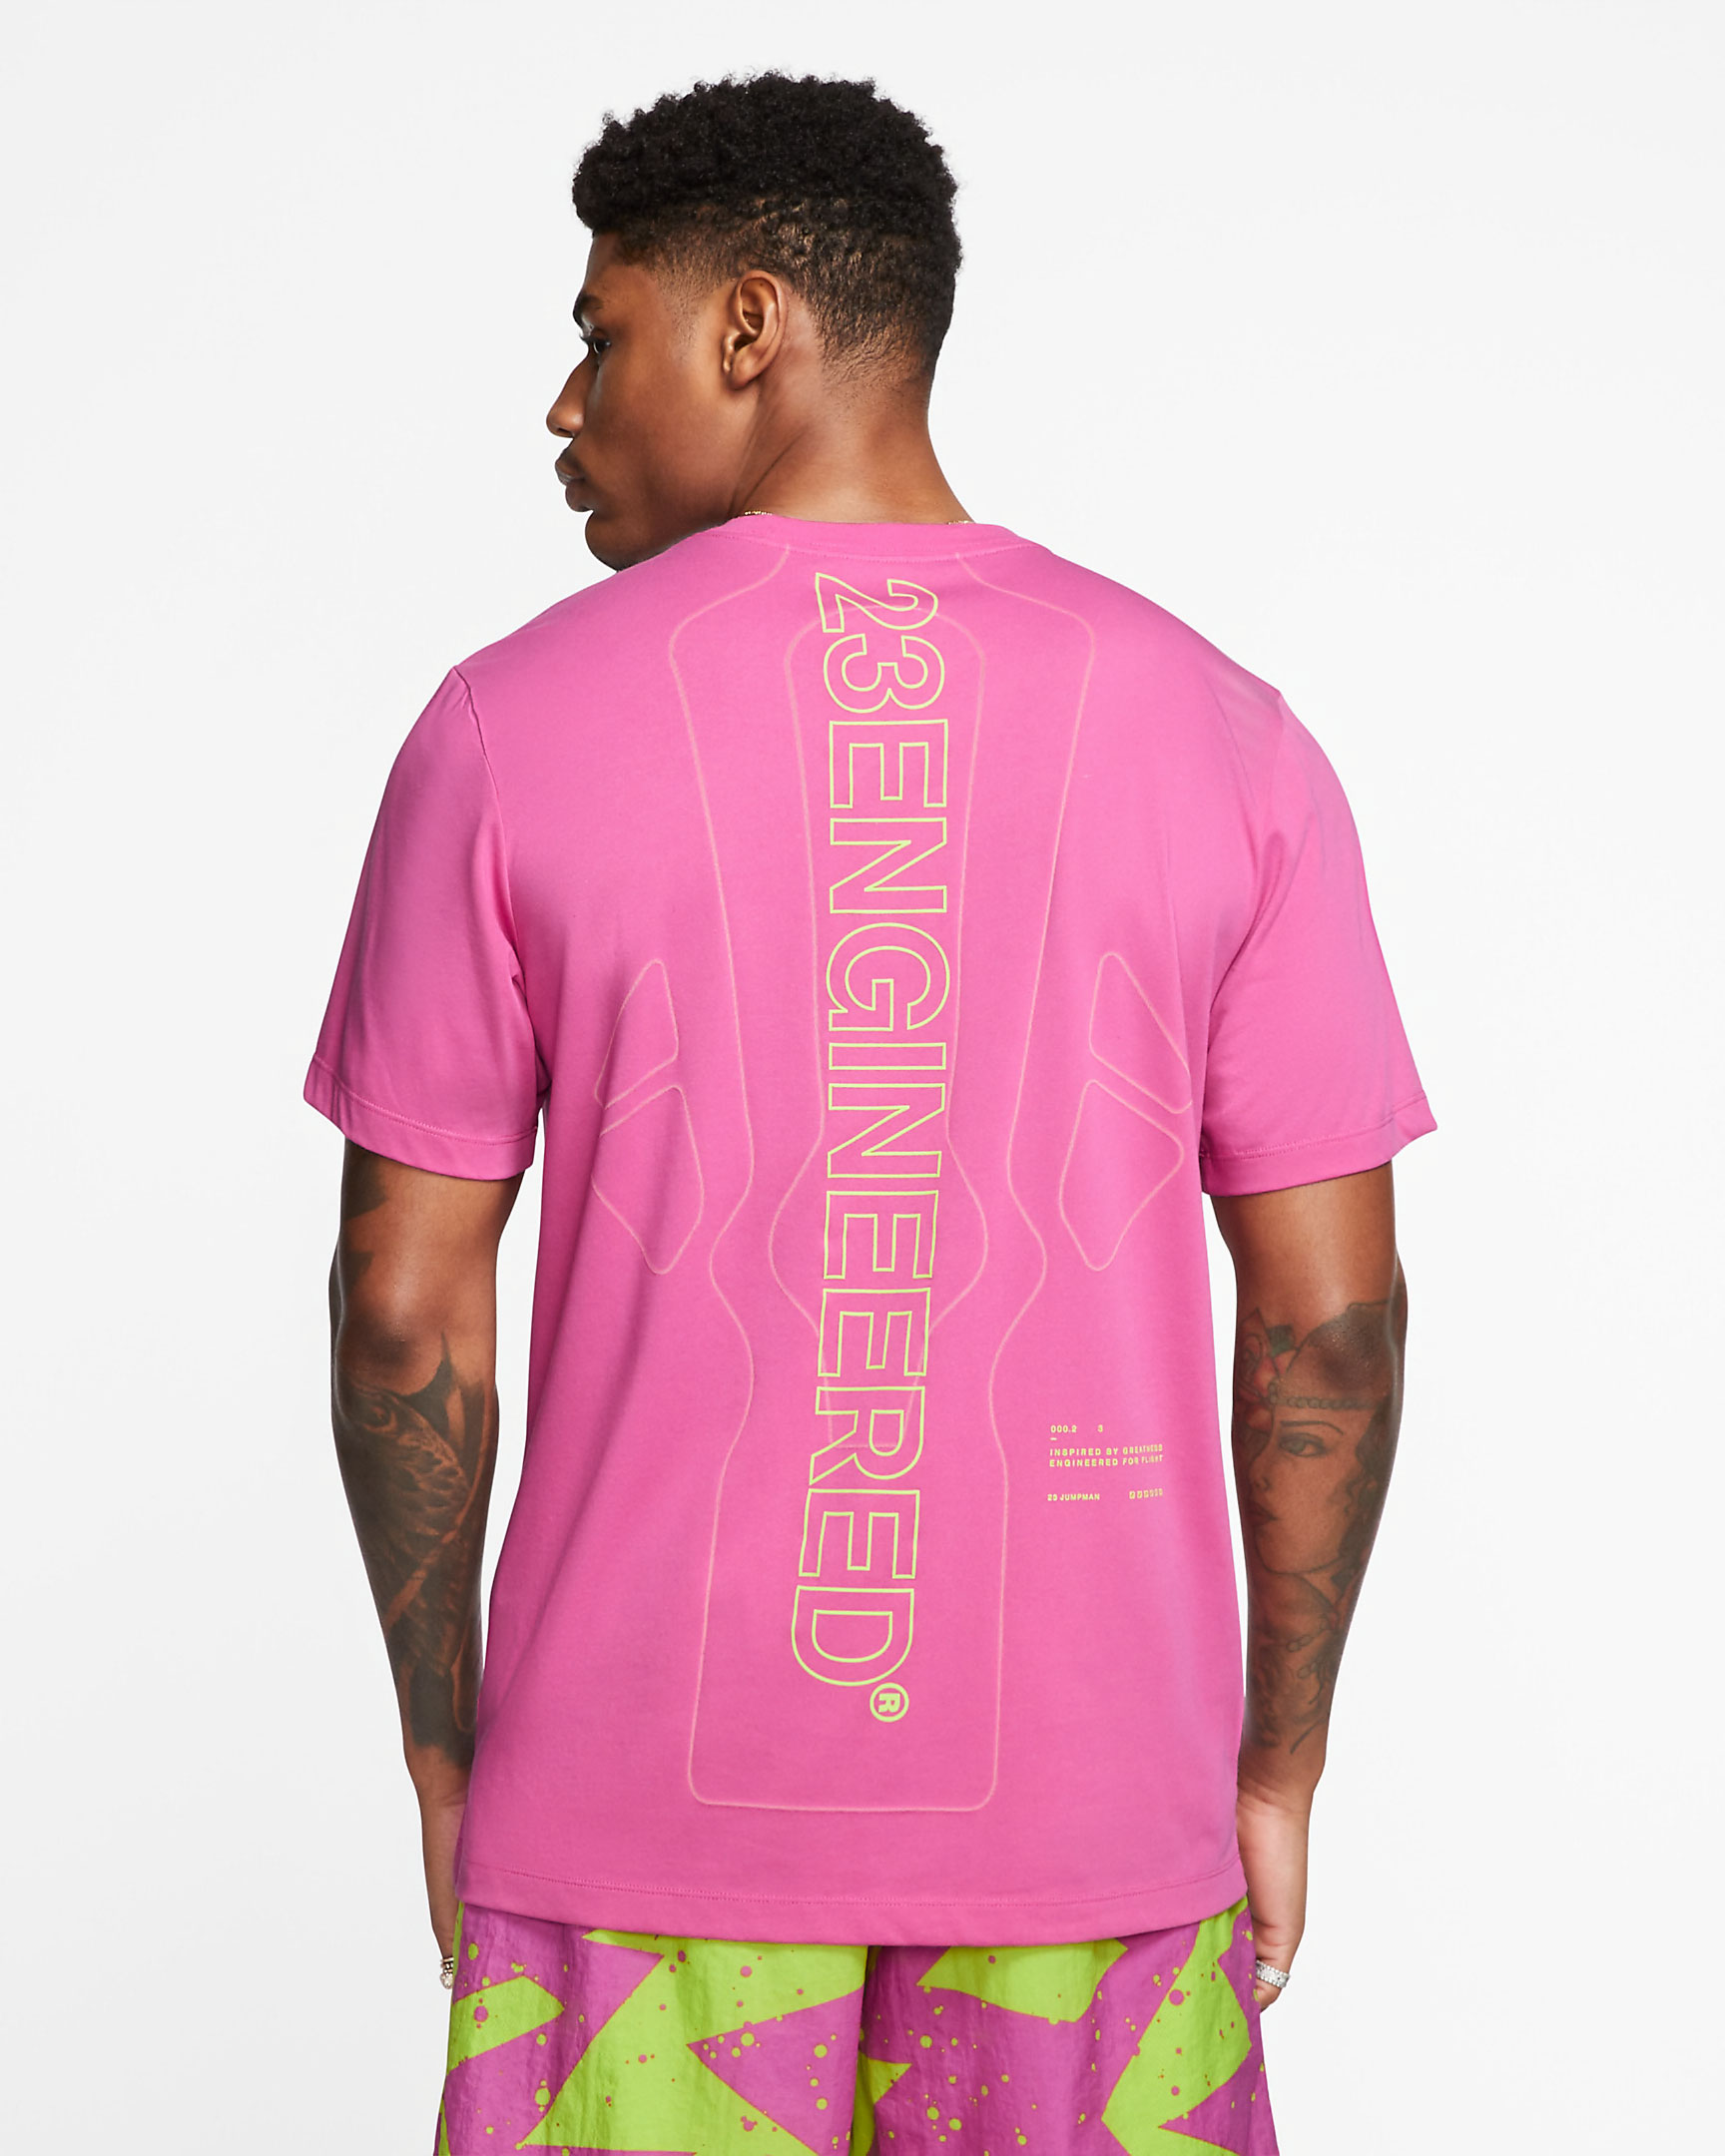 jordan-23-engineered-shirt-fuchsia-cyber-1